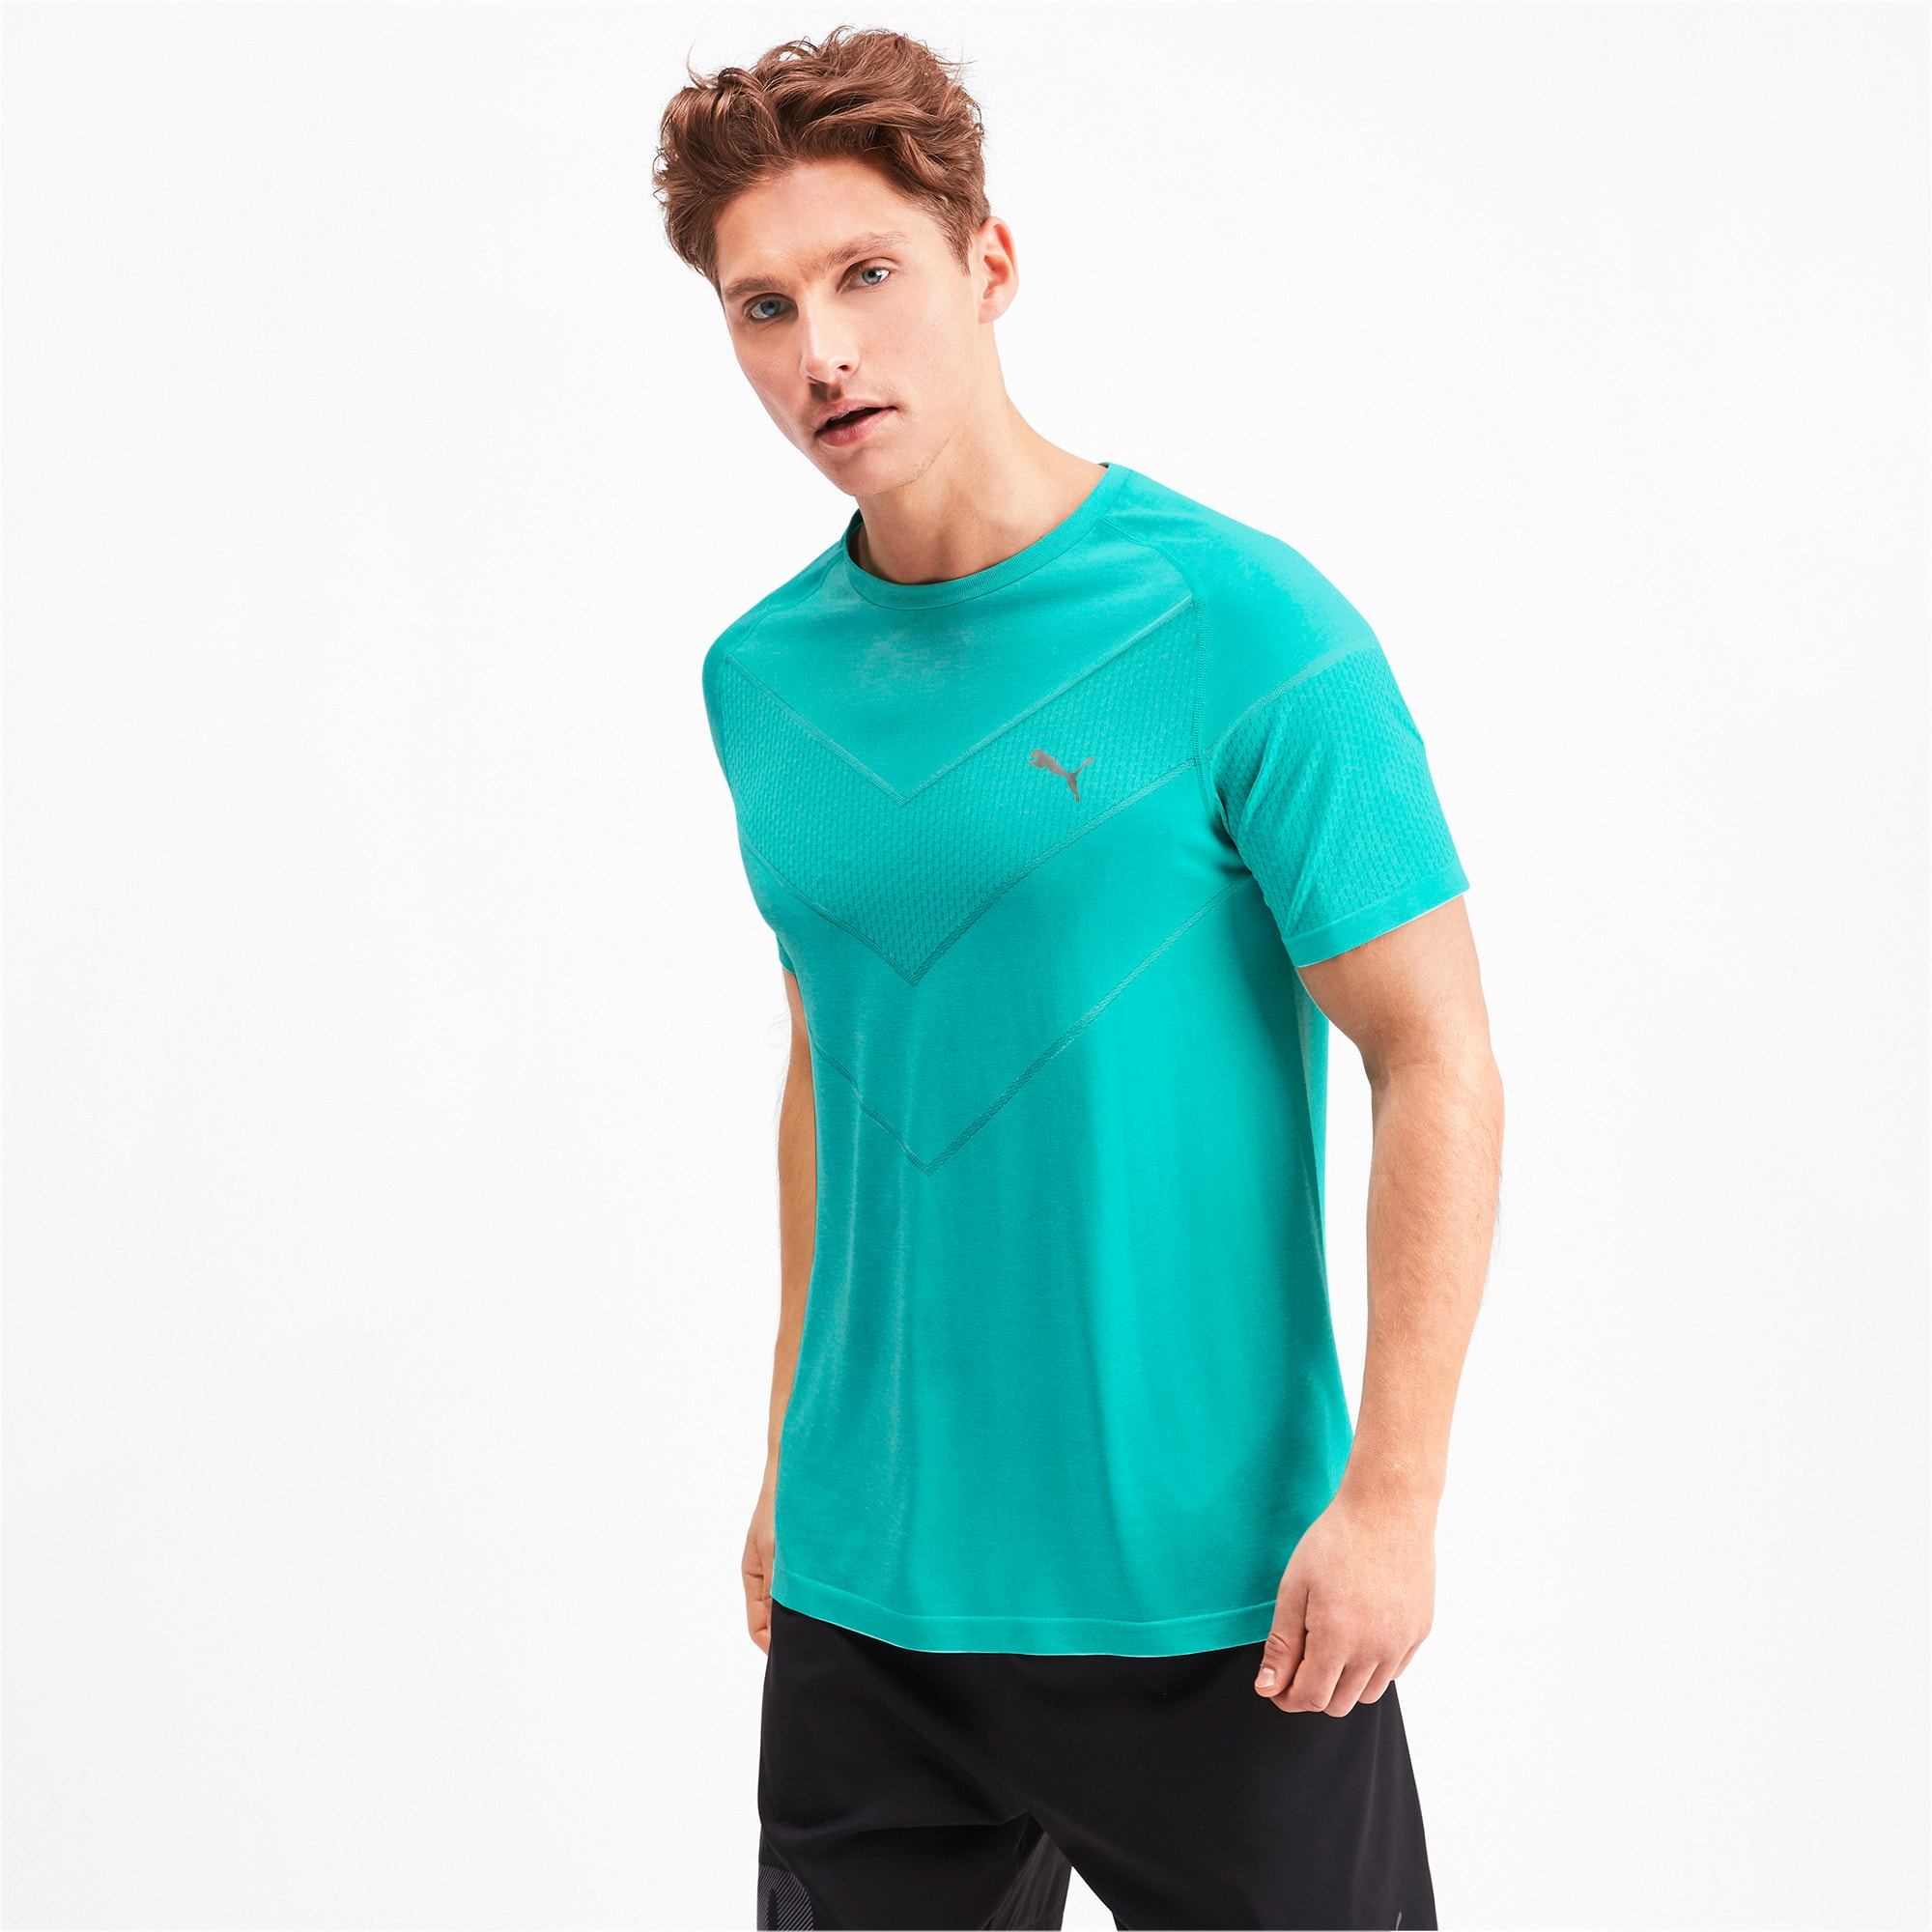 Thumbnail 1 of Reactive evoKNIT Men's Tee, Blue Turquoise Heather, medium-IND